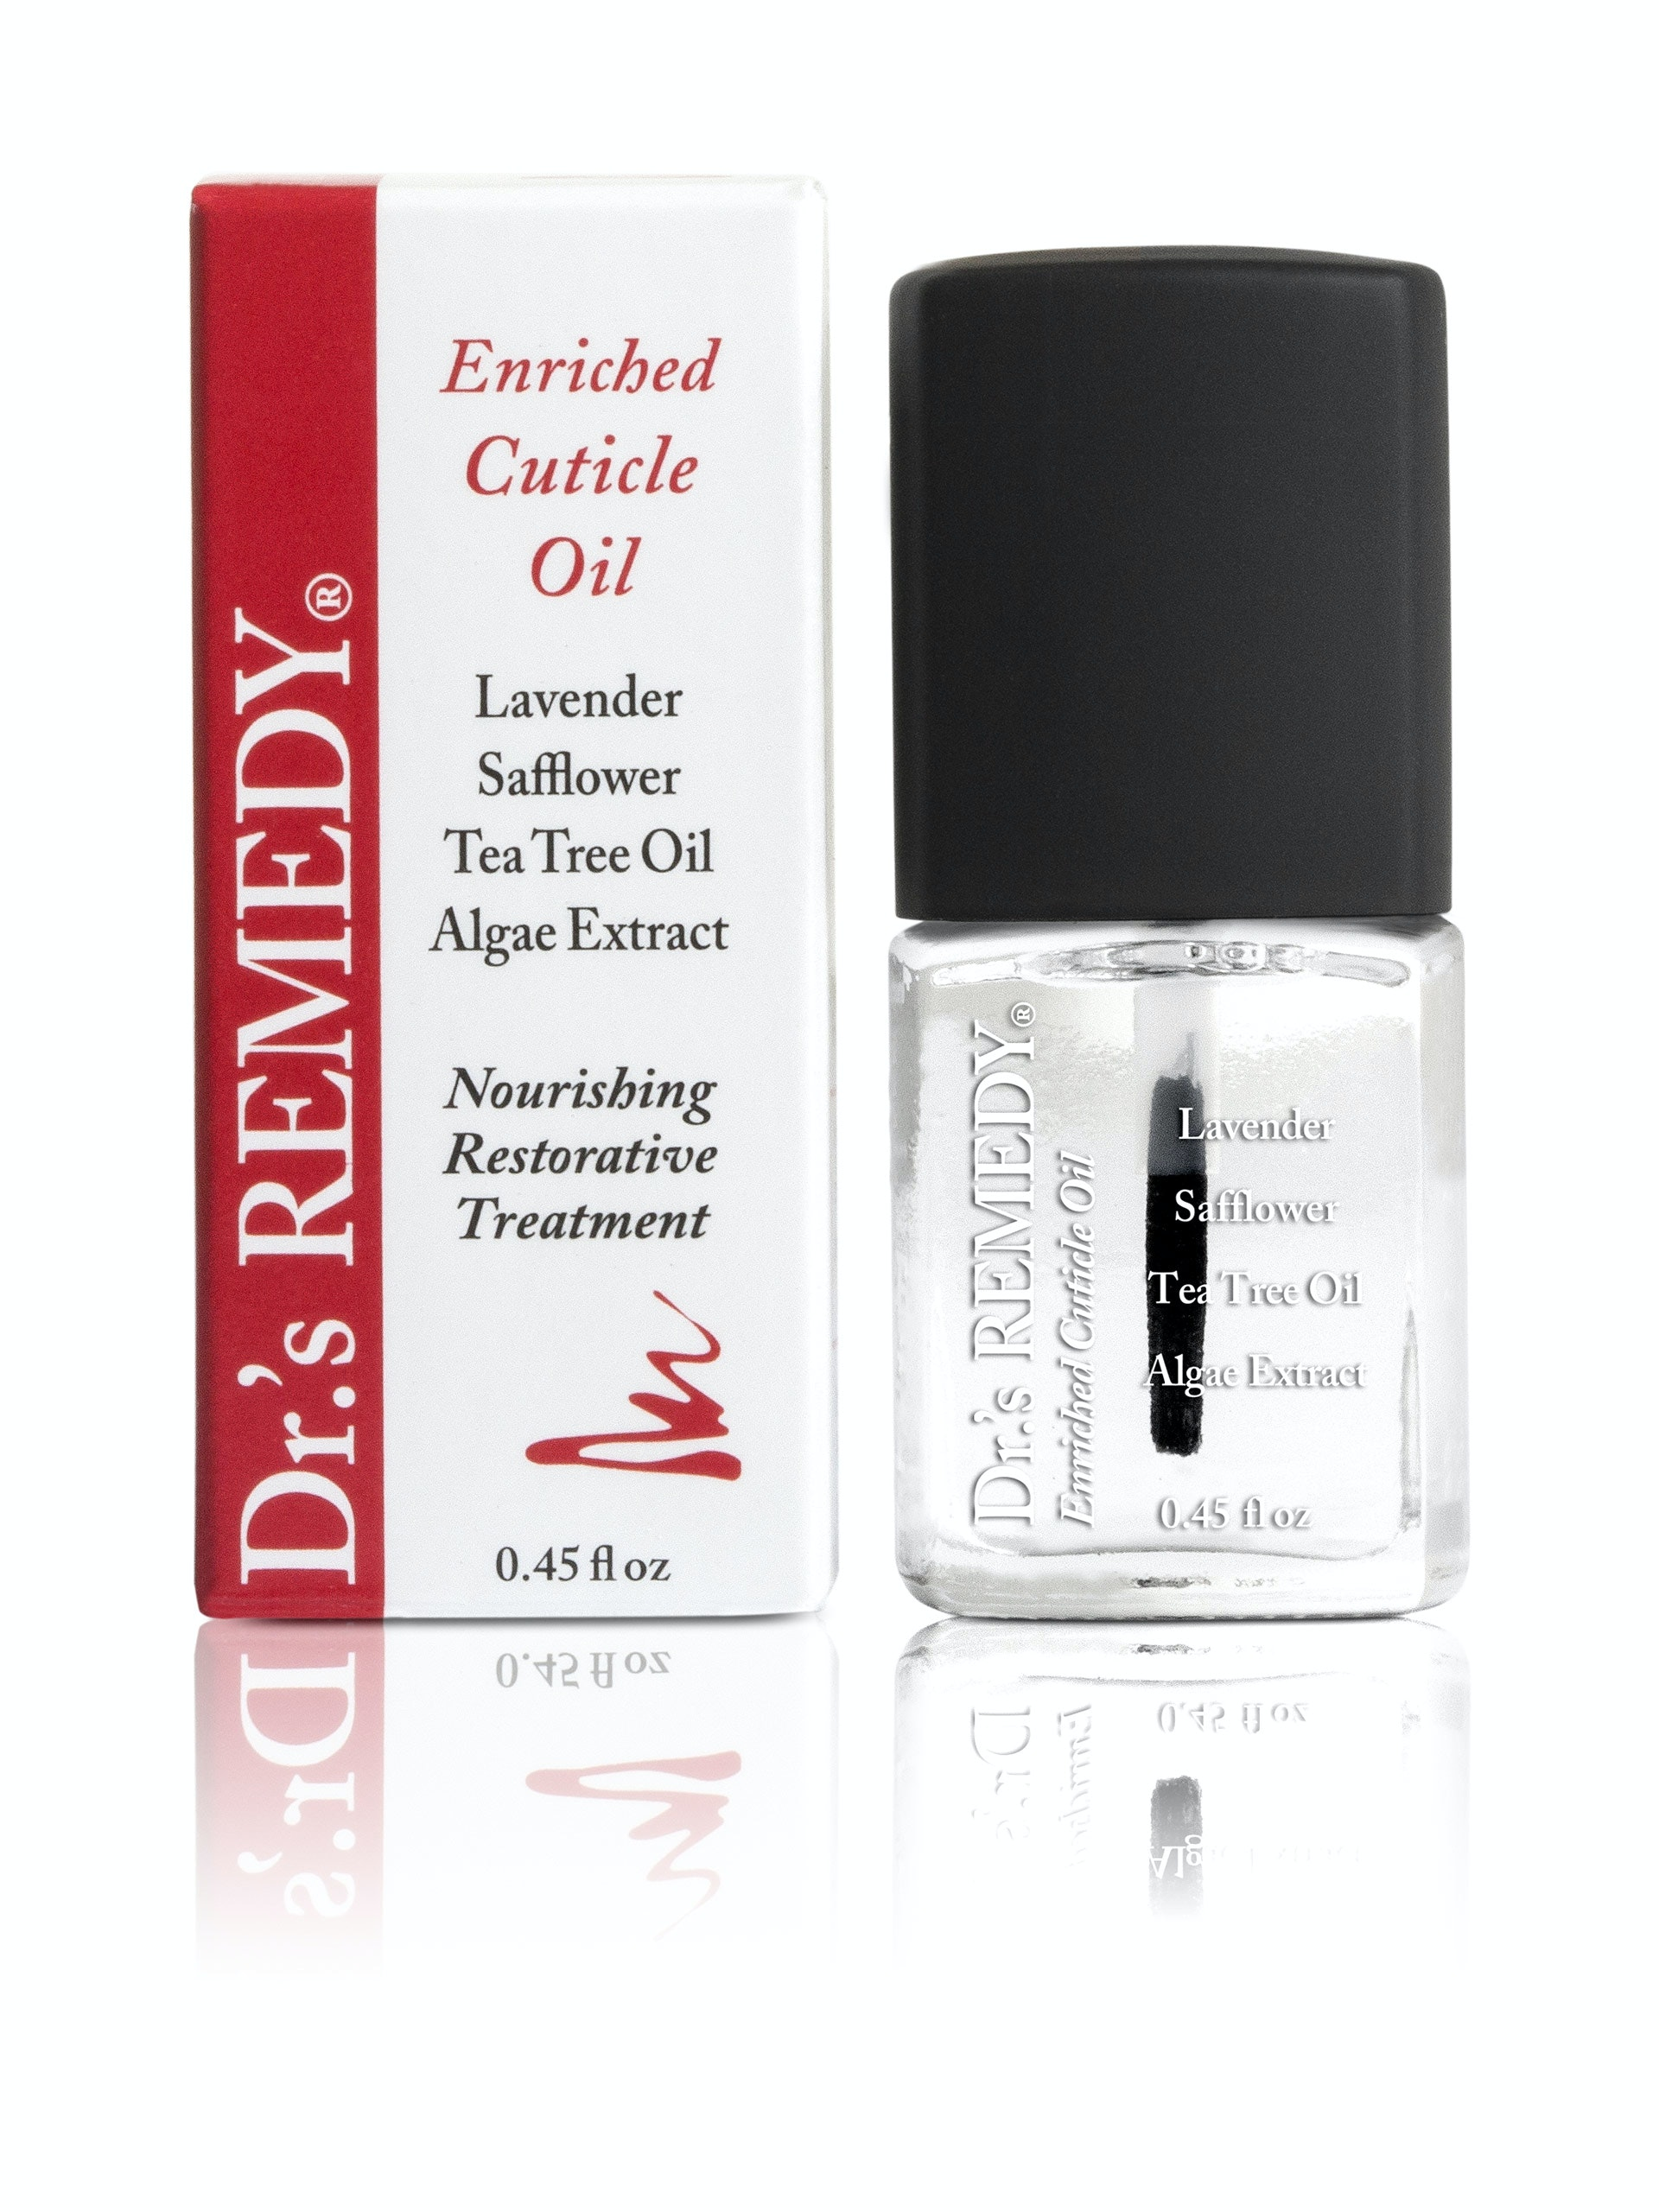 caress-enriched-cuticle-oil (2)